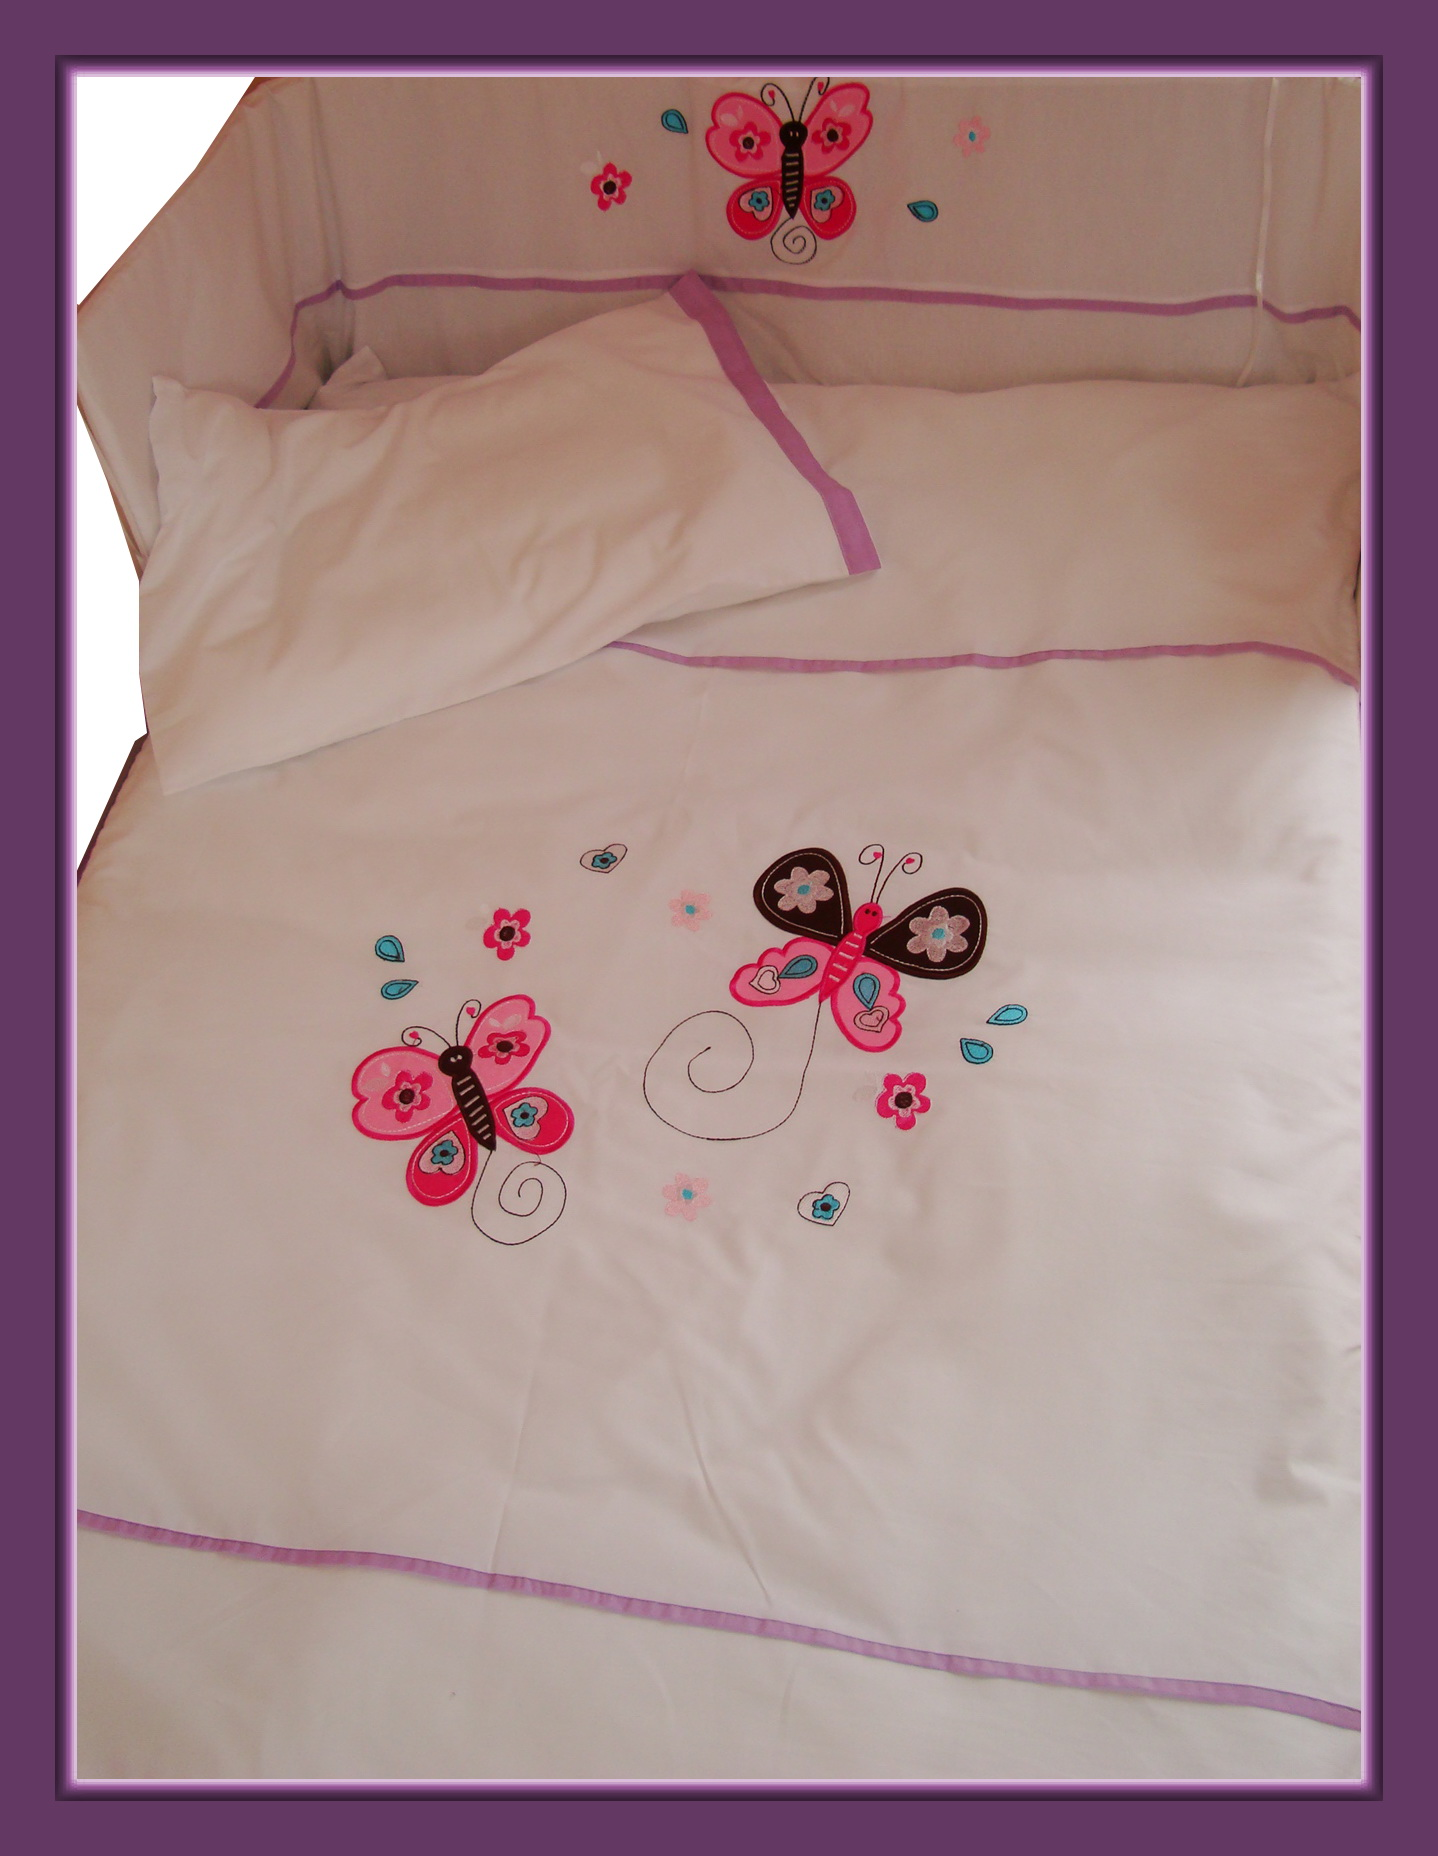 baby bettw sche set schmetterlinge blumen herzen lila butterfly duvet cover ebay. Black Bedroom Furniture Sets. Home Design Ideas